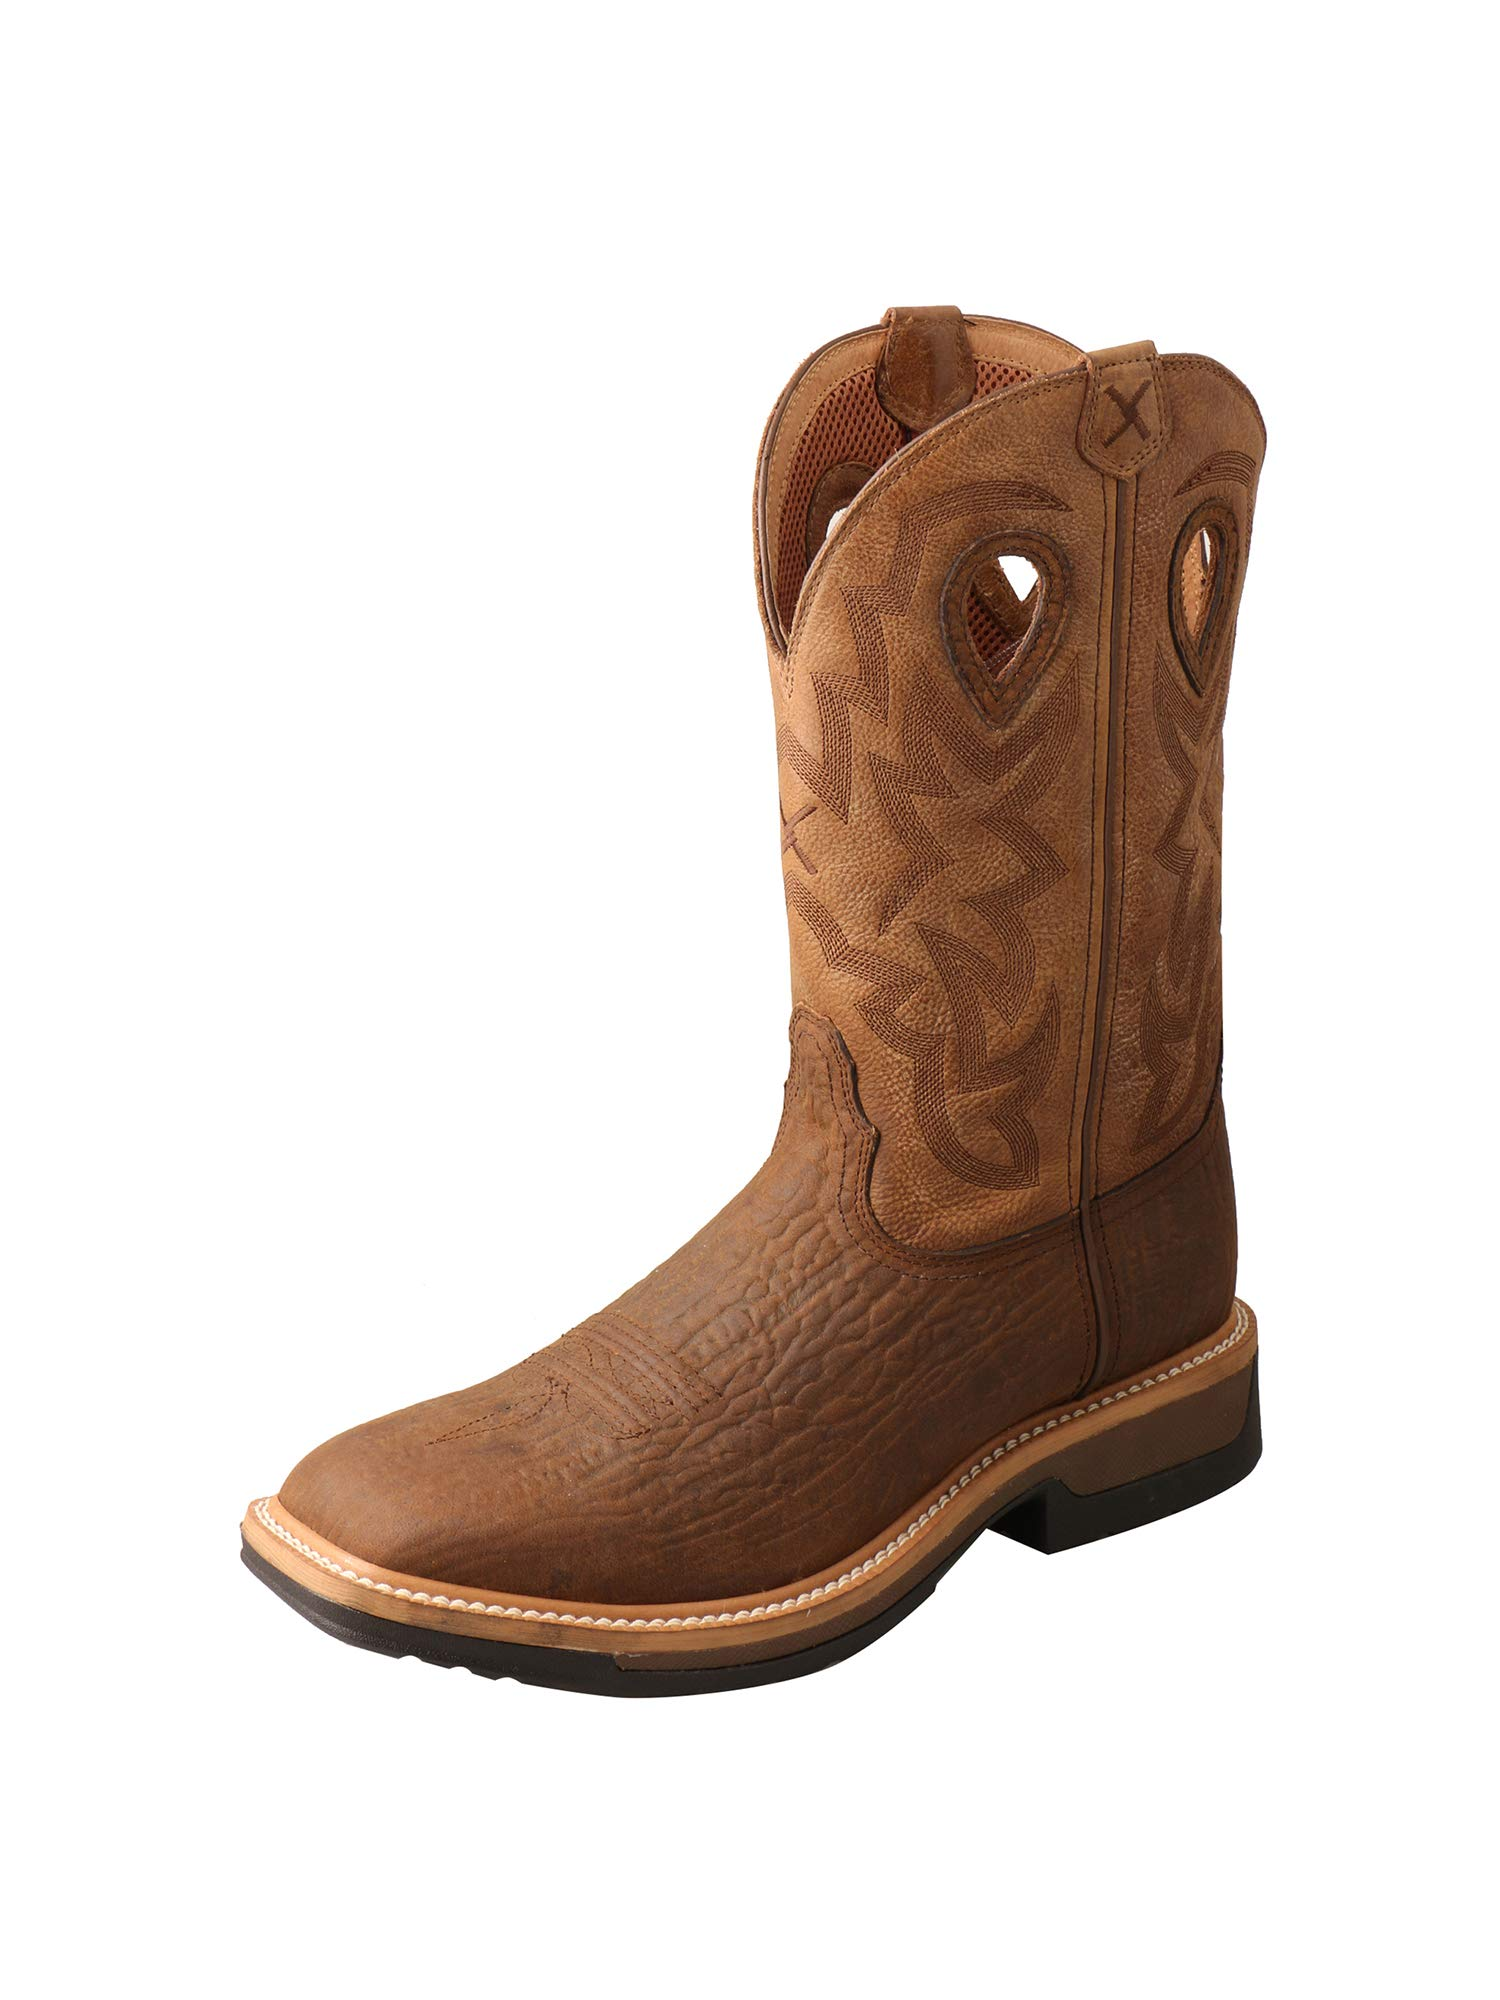 Twisted X Men's Lite Cowboy Western Work Boot Wide Square Toe Brown 11 D by Twisted X